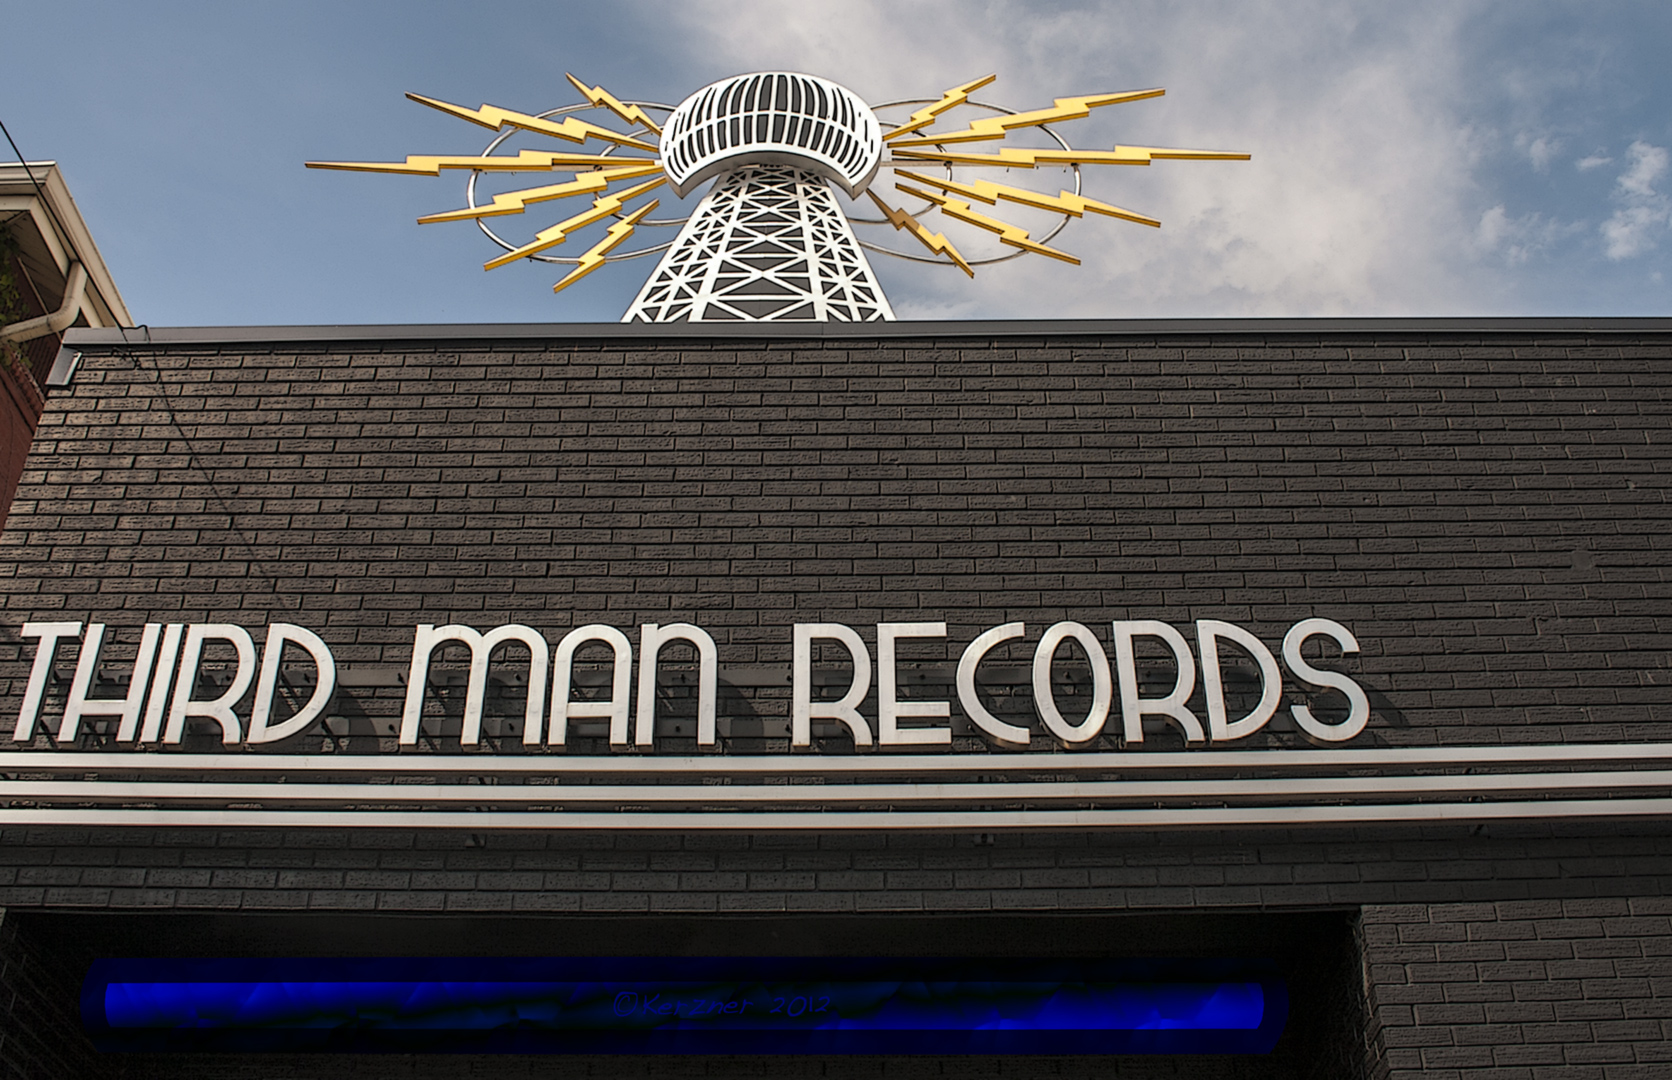 5 things I learned about branding from Third Man Records